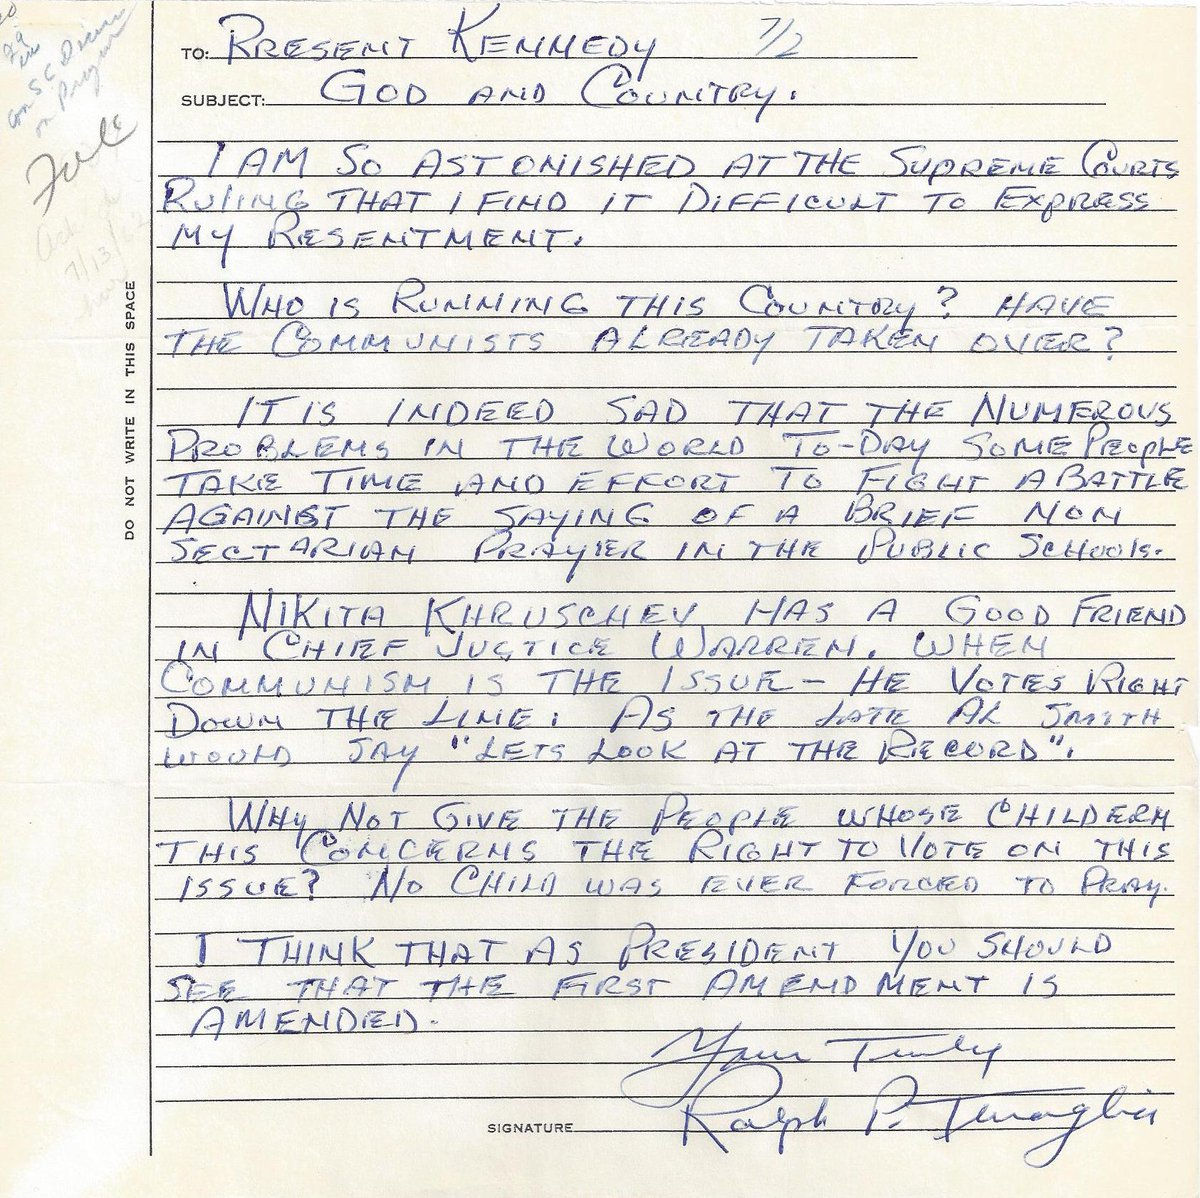 Jfk library on twitter the supreme court ruled 6 1 against school prayer otd in 1962 motivating thousands of people to write to jfk about the role of prayer in public life read some of their letters expocarfo Image collections